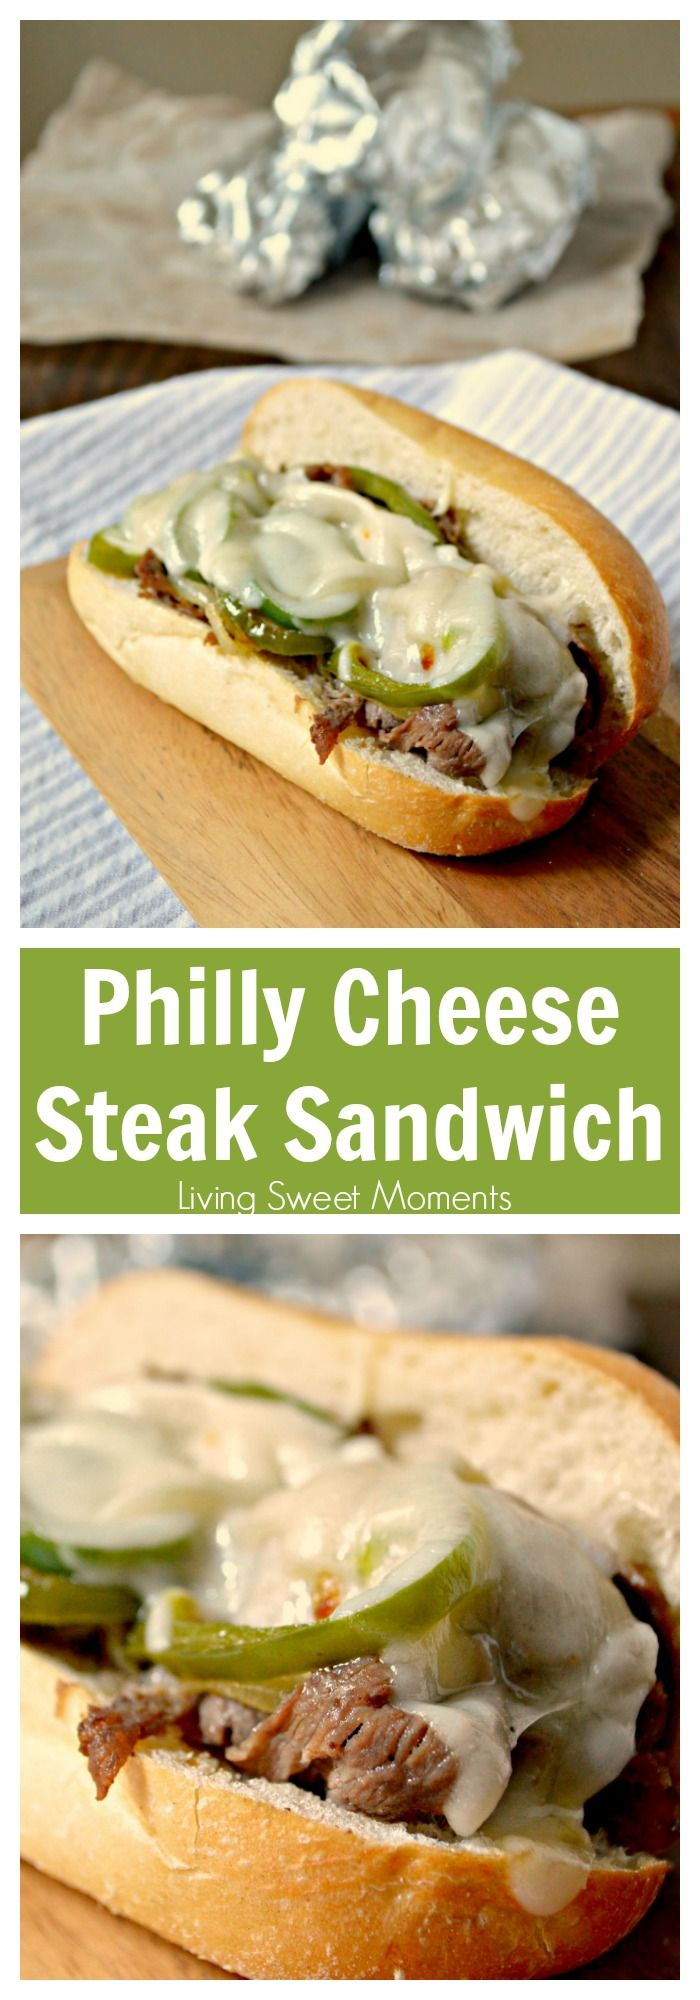 Easy Philly Cheese Steak Sandwich Recipe  - this easy weeknight dinner idea is made in no time and has so much flavor! Enjoy authentic flavor in one bite. More quick weeknight dinner recipes at livingsweetmoments.com via @Livingsmoments